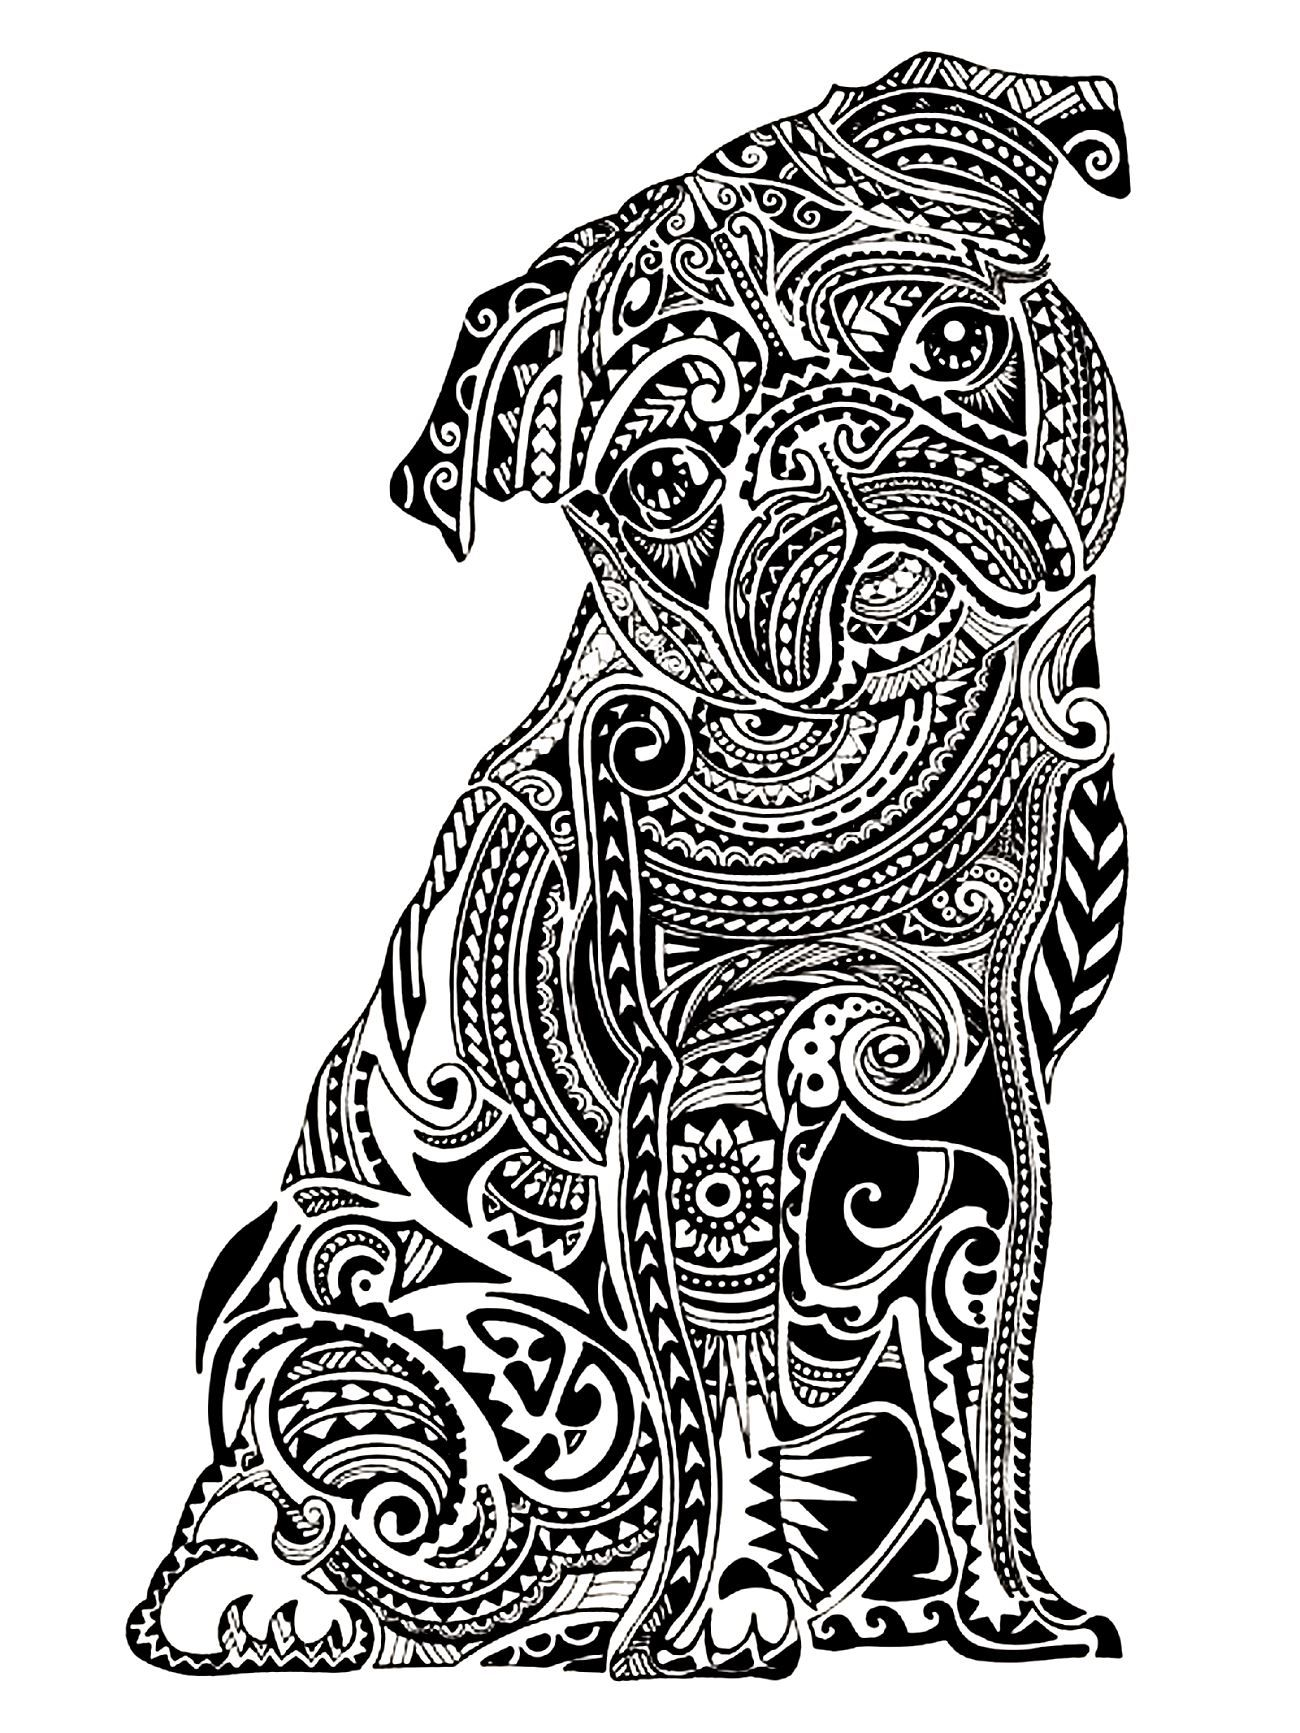 10 Free Dog Coloring Pages For Adults Coloriage Mandala Animaux